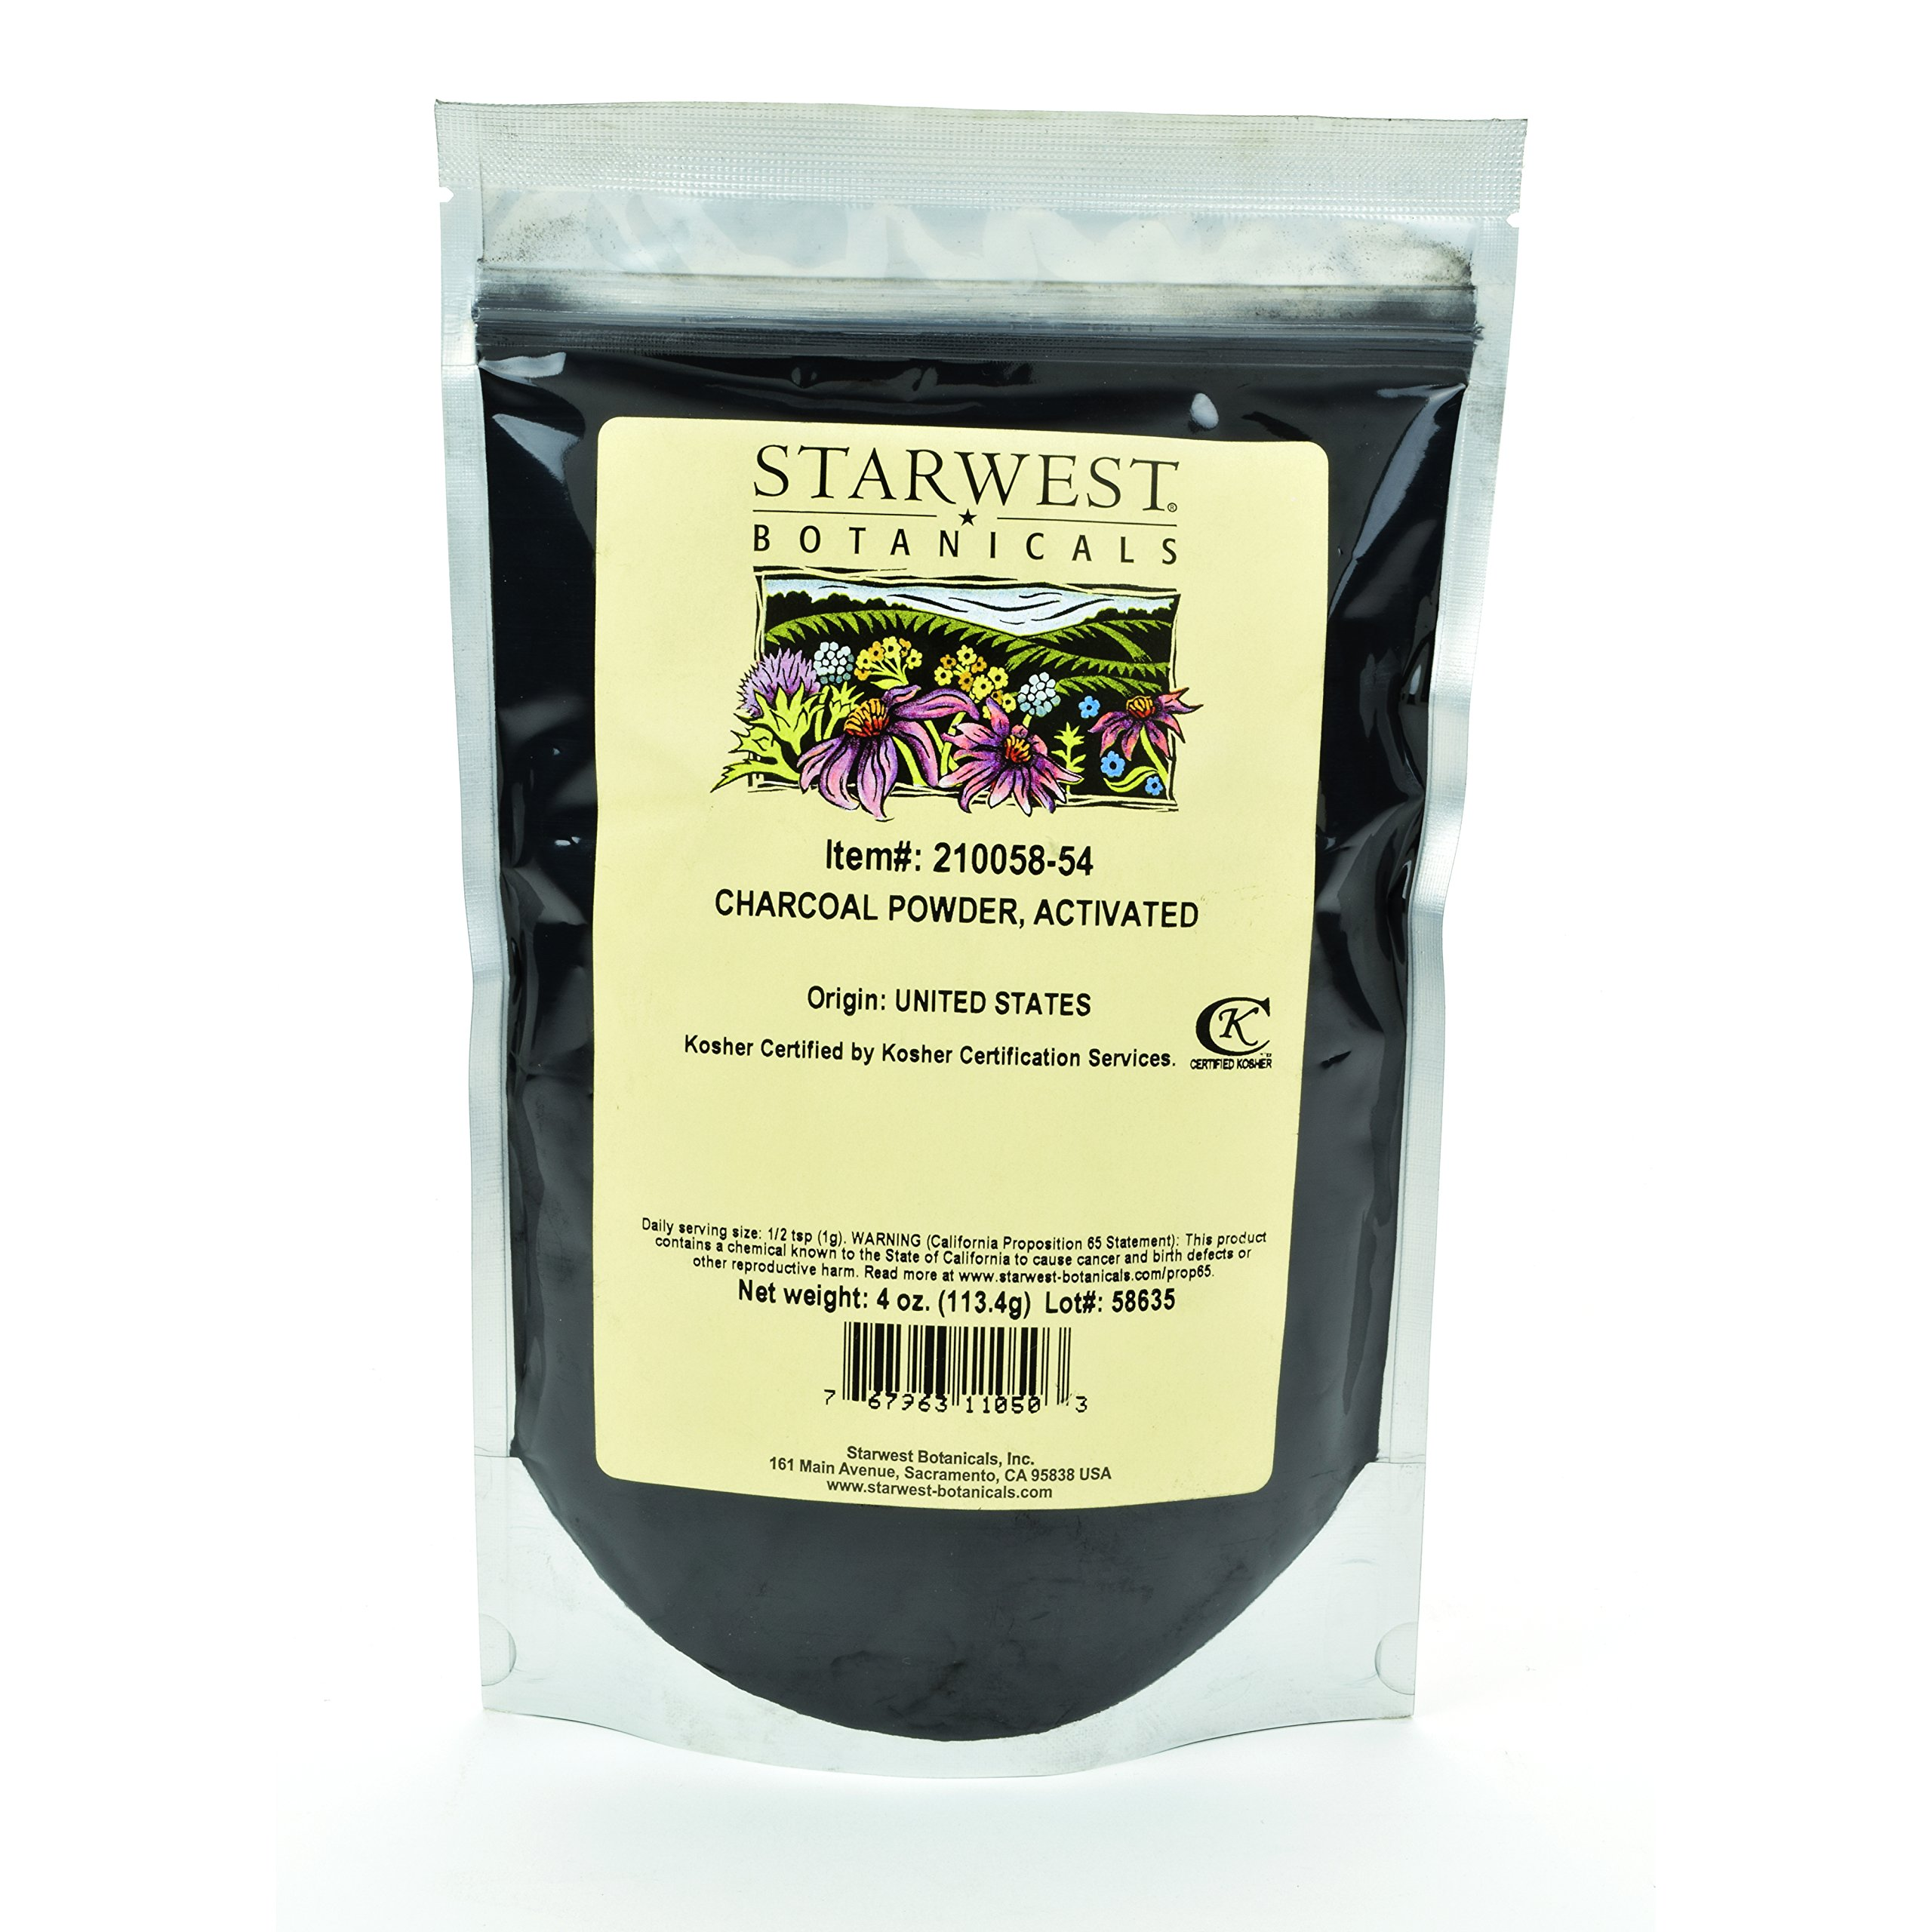 Starwest Botanicals FOOD GRADE US Hardwood Activated Charcoal Powder, 4 Ounces (Pack of 4)